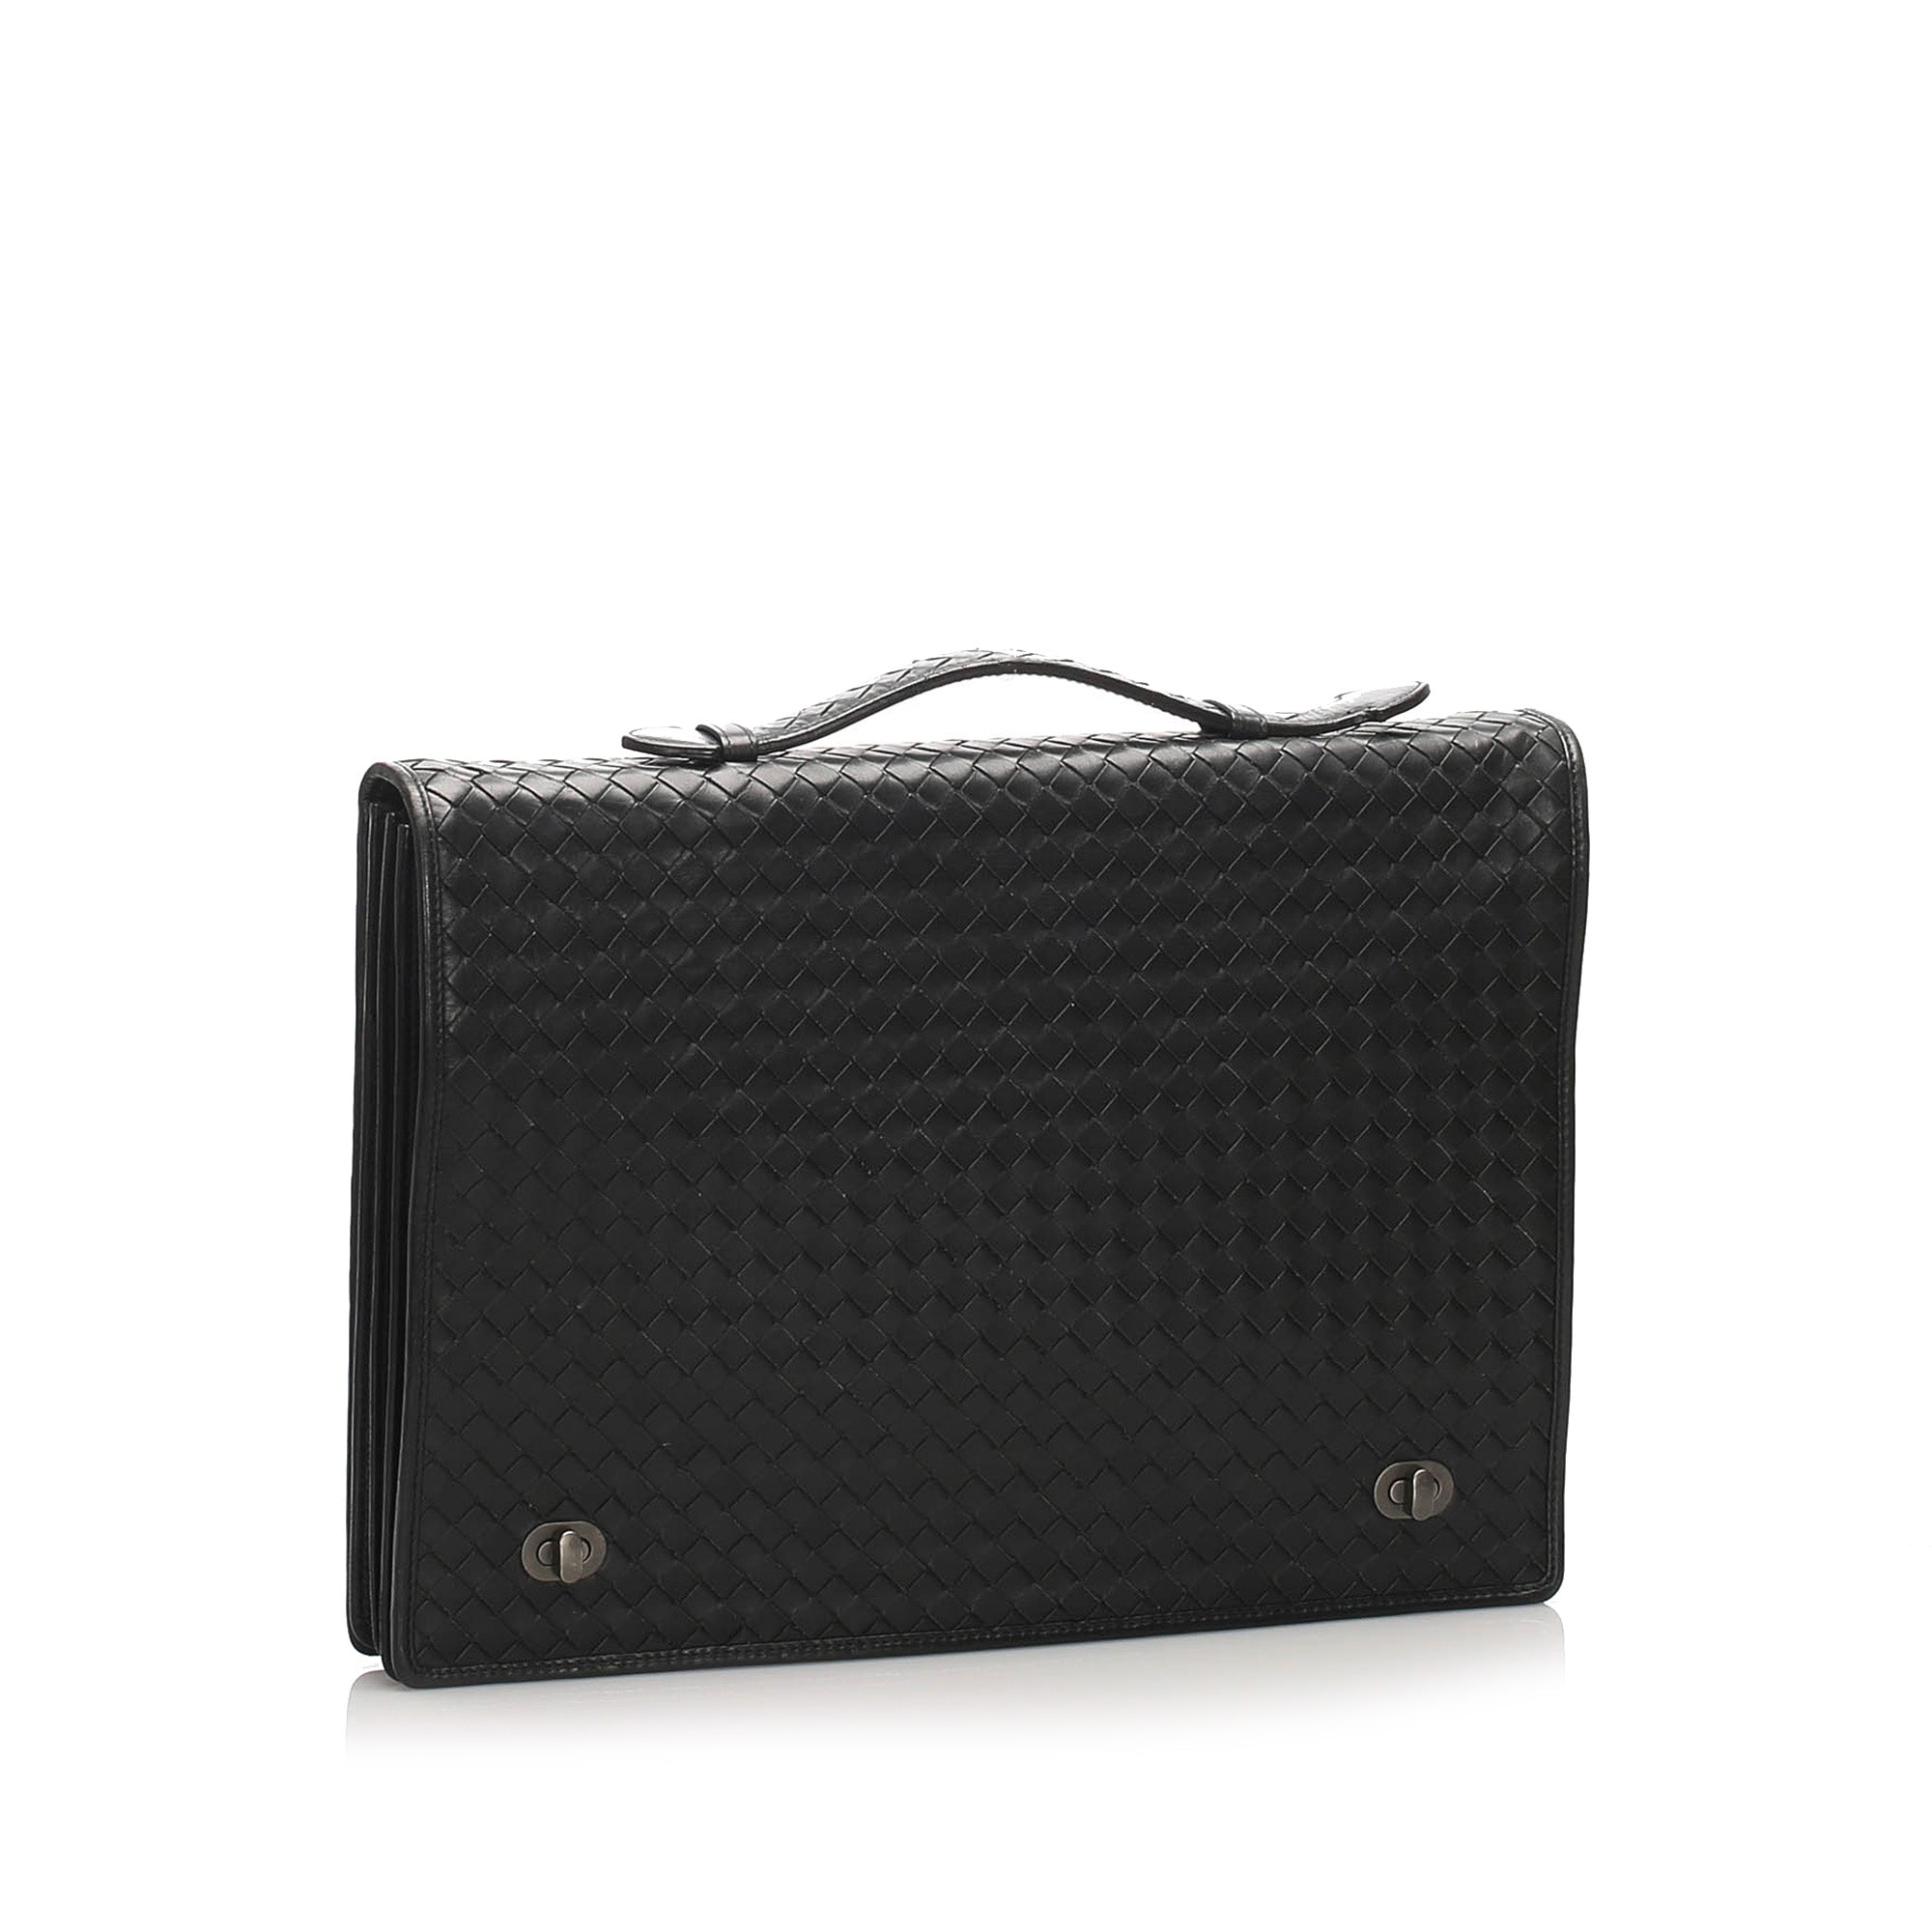 Bottega Veneta Black Intrecciato Leather Briefcase